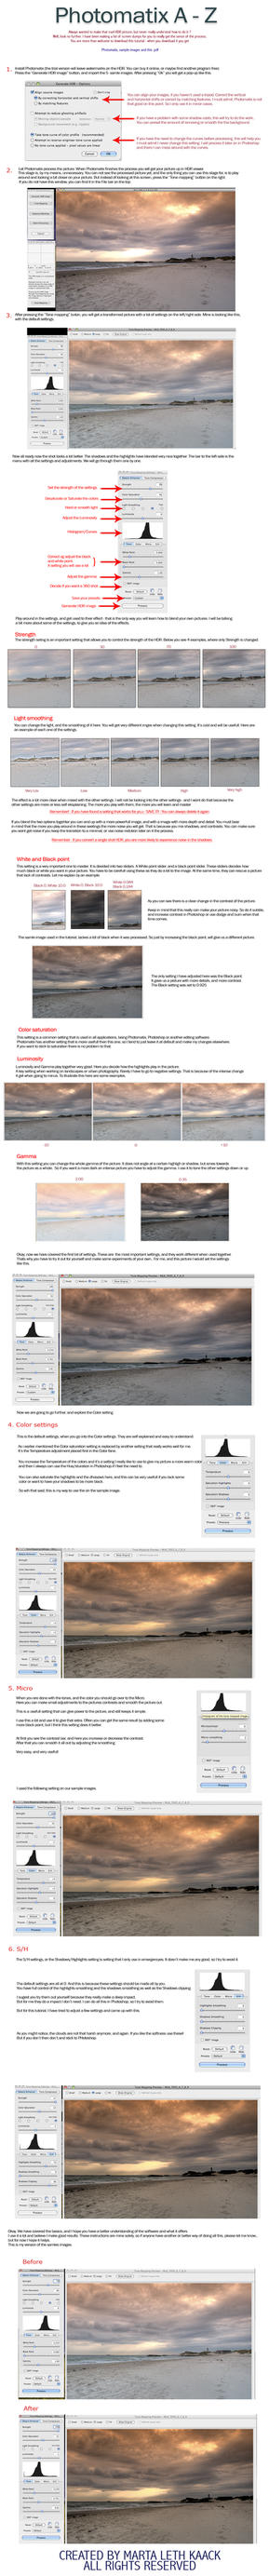 Photomatix from A to Z by Initio